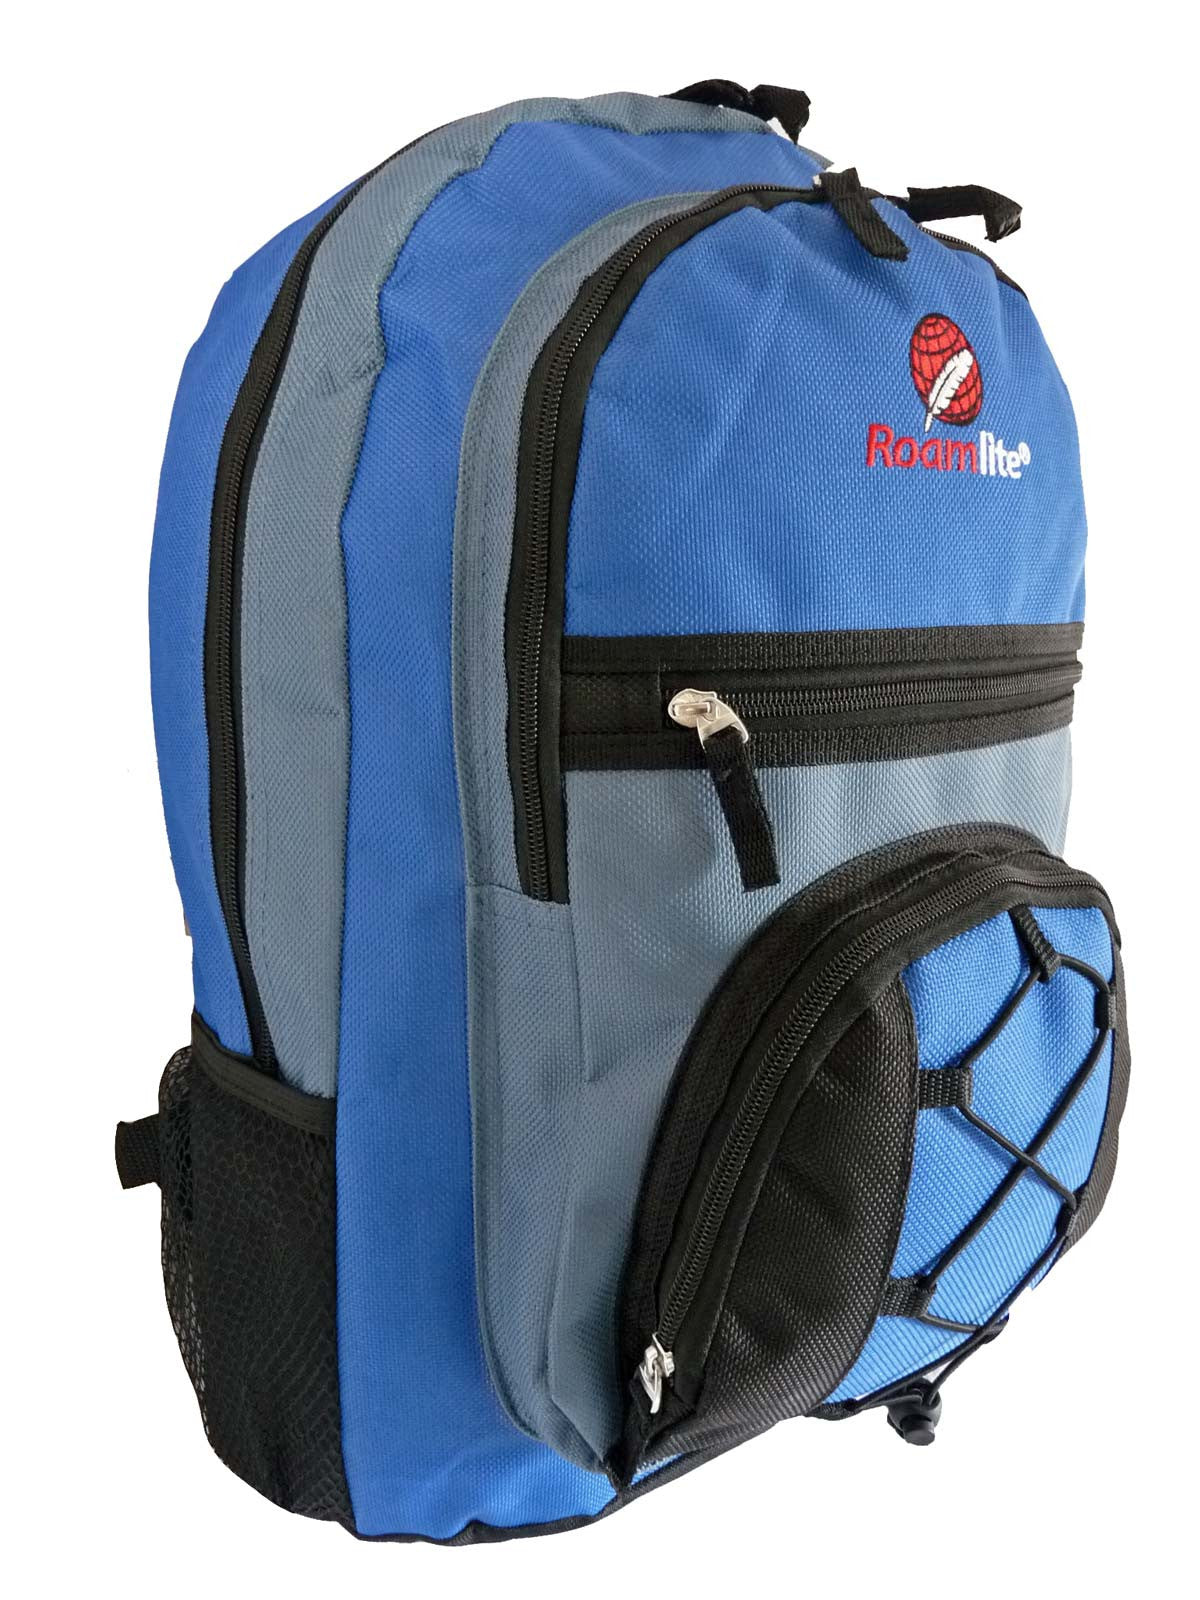 Kids School Bags RL37M Light Blue R Side View